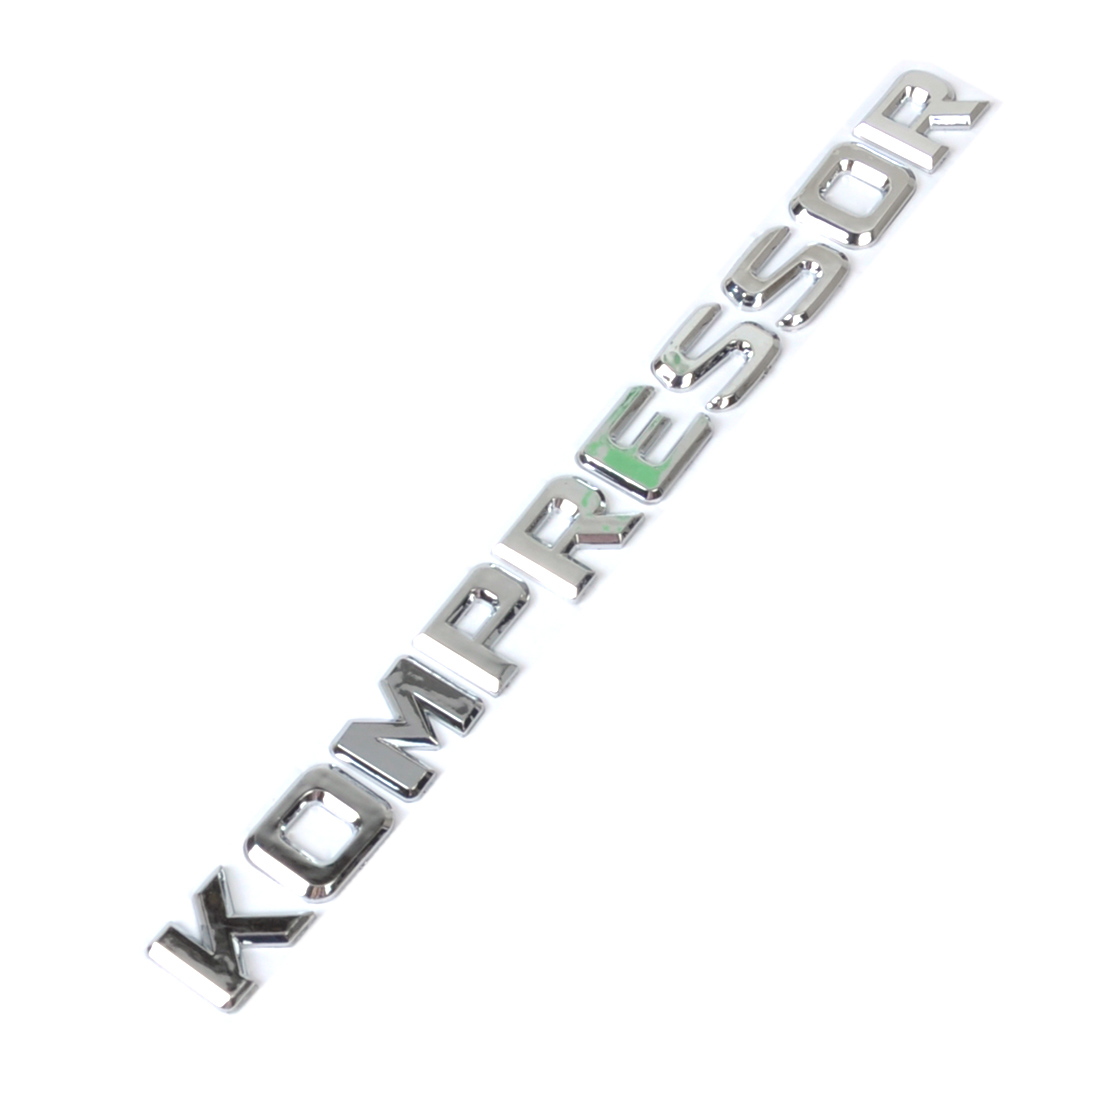 DWCX 3D Chrome KOMPRESSOR Badge Emblem Sticker for <font><b>Mercedes</b></font> <font><b>Benz</b></font> <font><b>SLK</b></font> CLK SL CLS ML GL A B C E S Class CL55 <font><b>SLK200</b></font> C180 CLC200 image